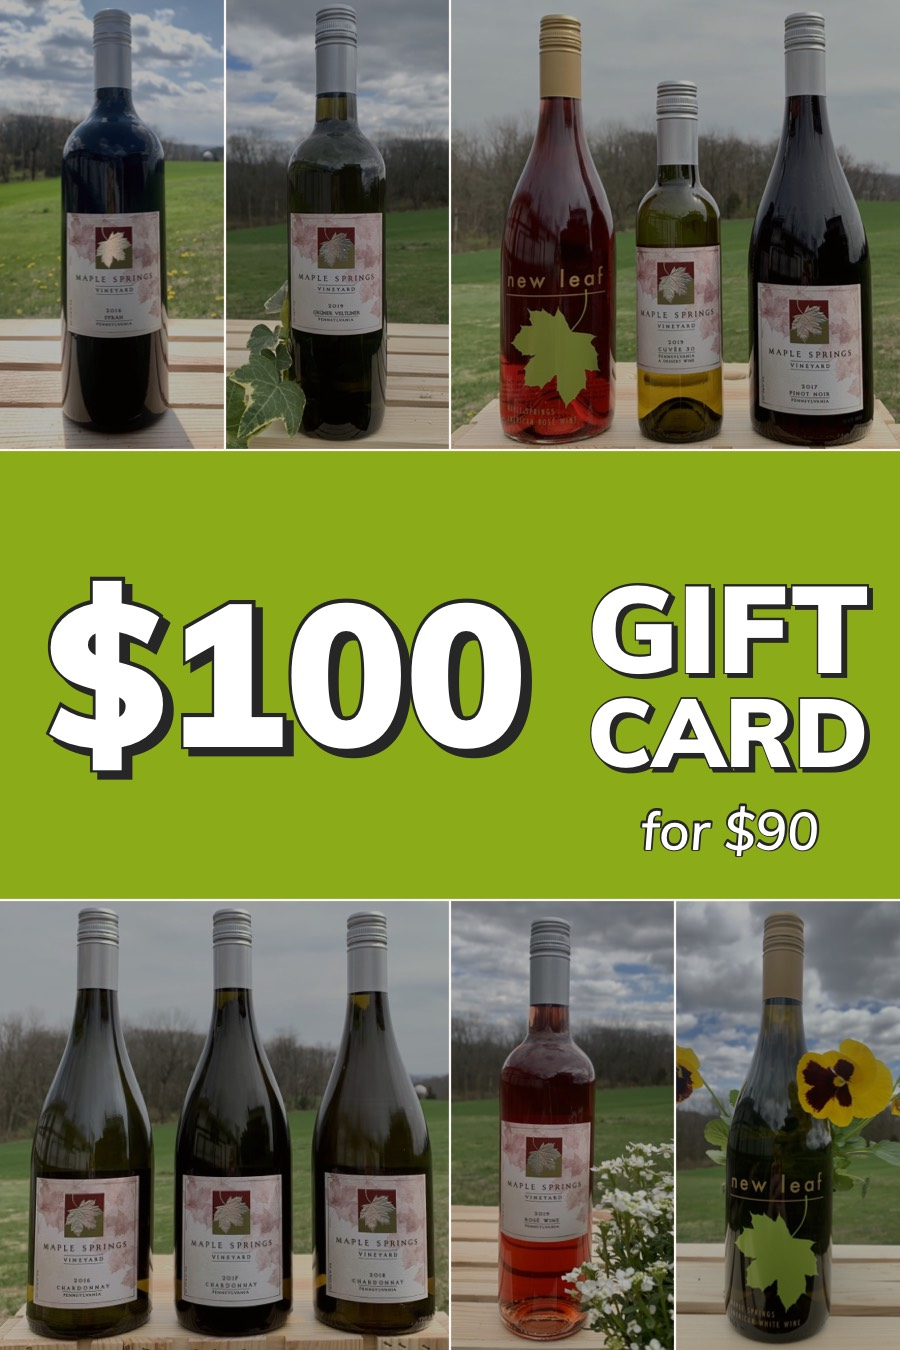 Product Image for Gift Card - $100